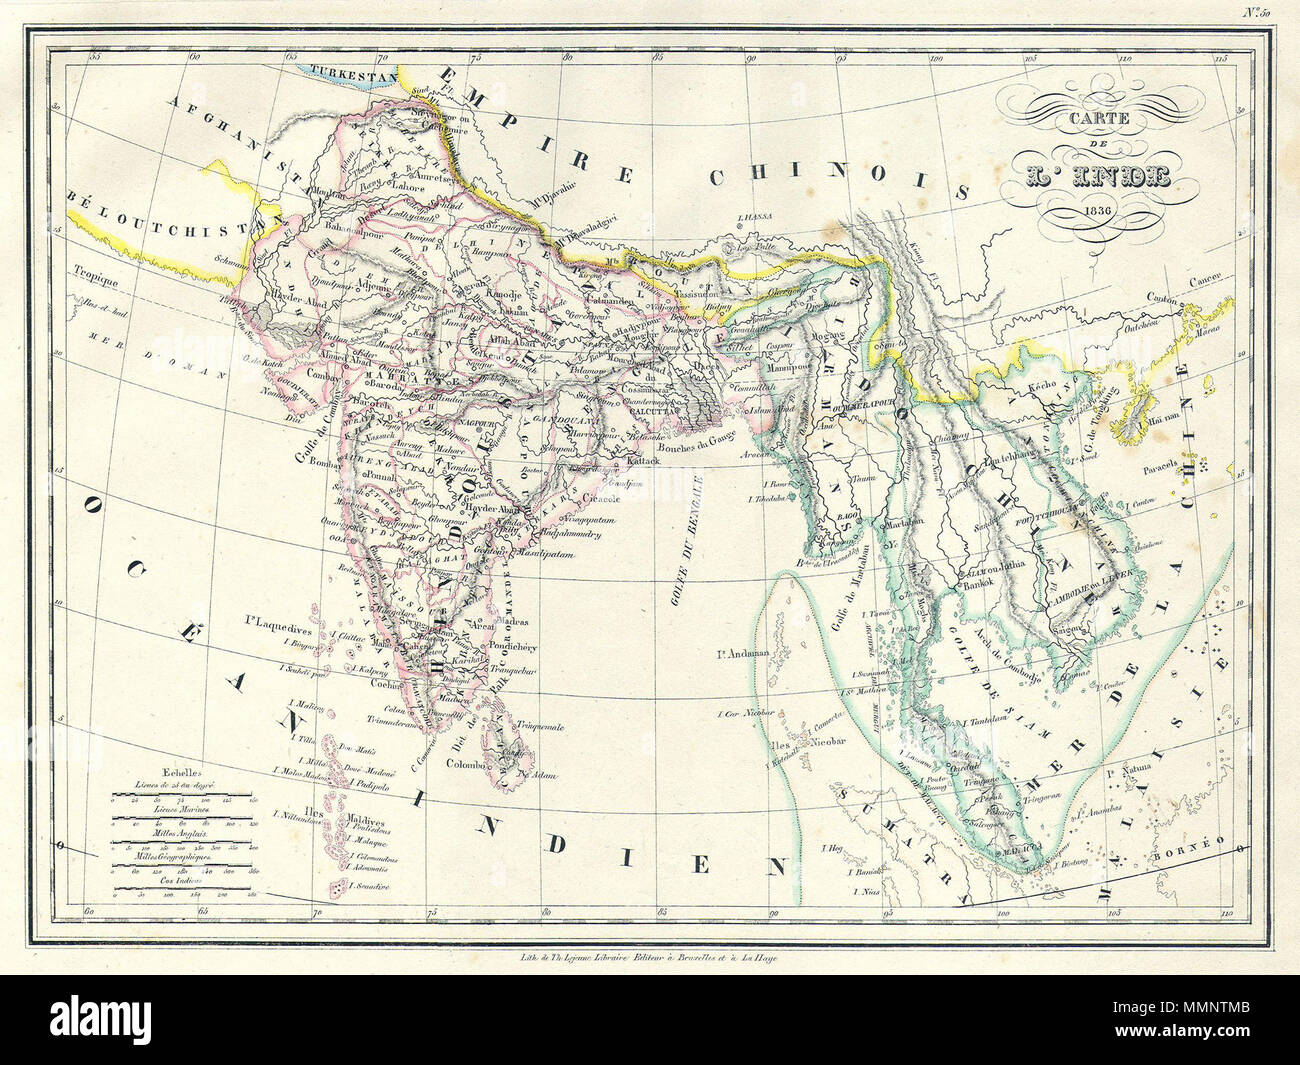 India Bangladesh Map Stock Photos  U0026 India Bangladesh Map